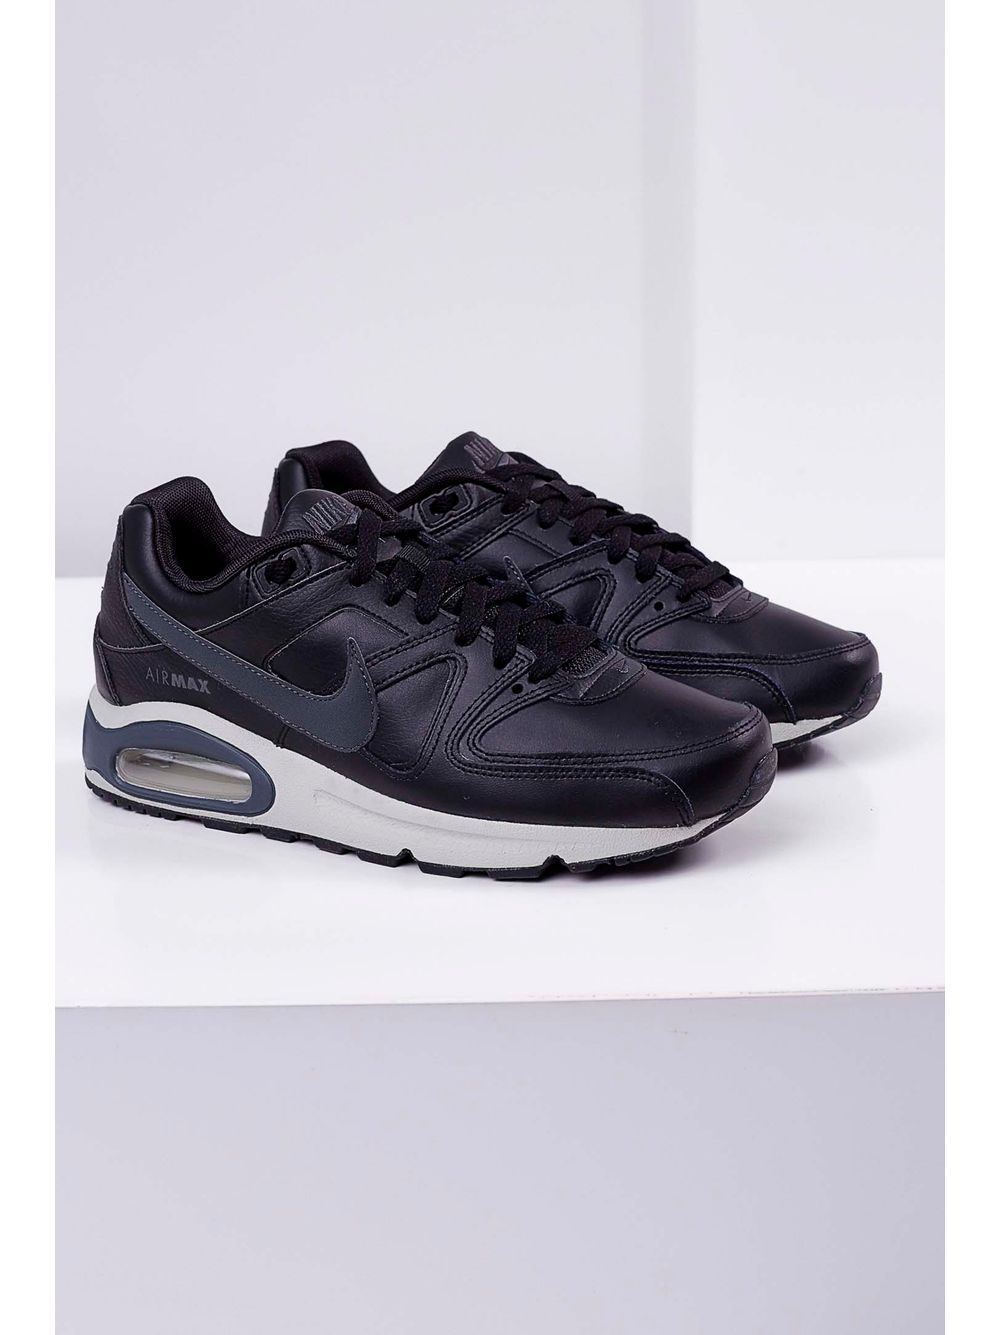 Tênis Nike Air Max Command Leather Shoe Preto - pittol da95469dc6e77